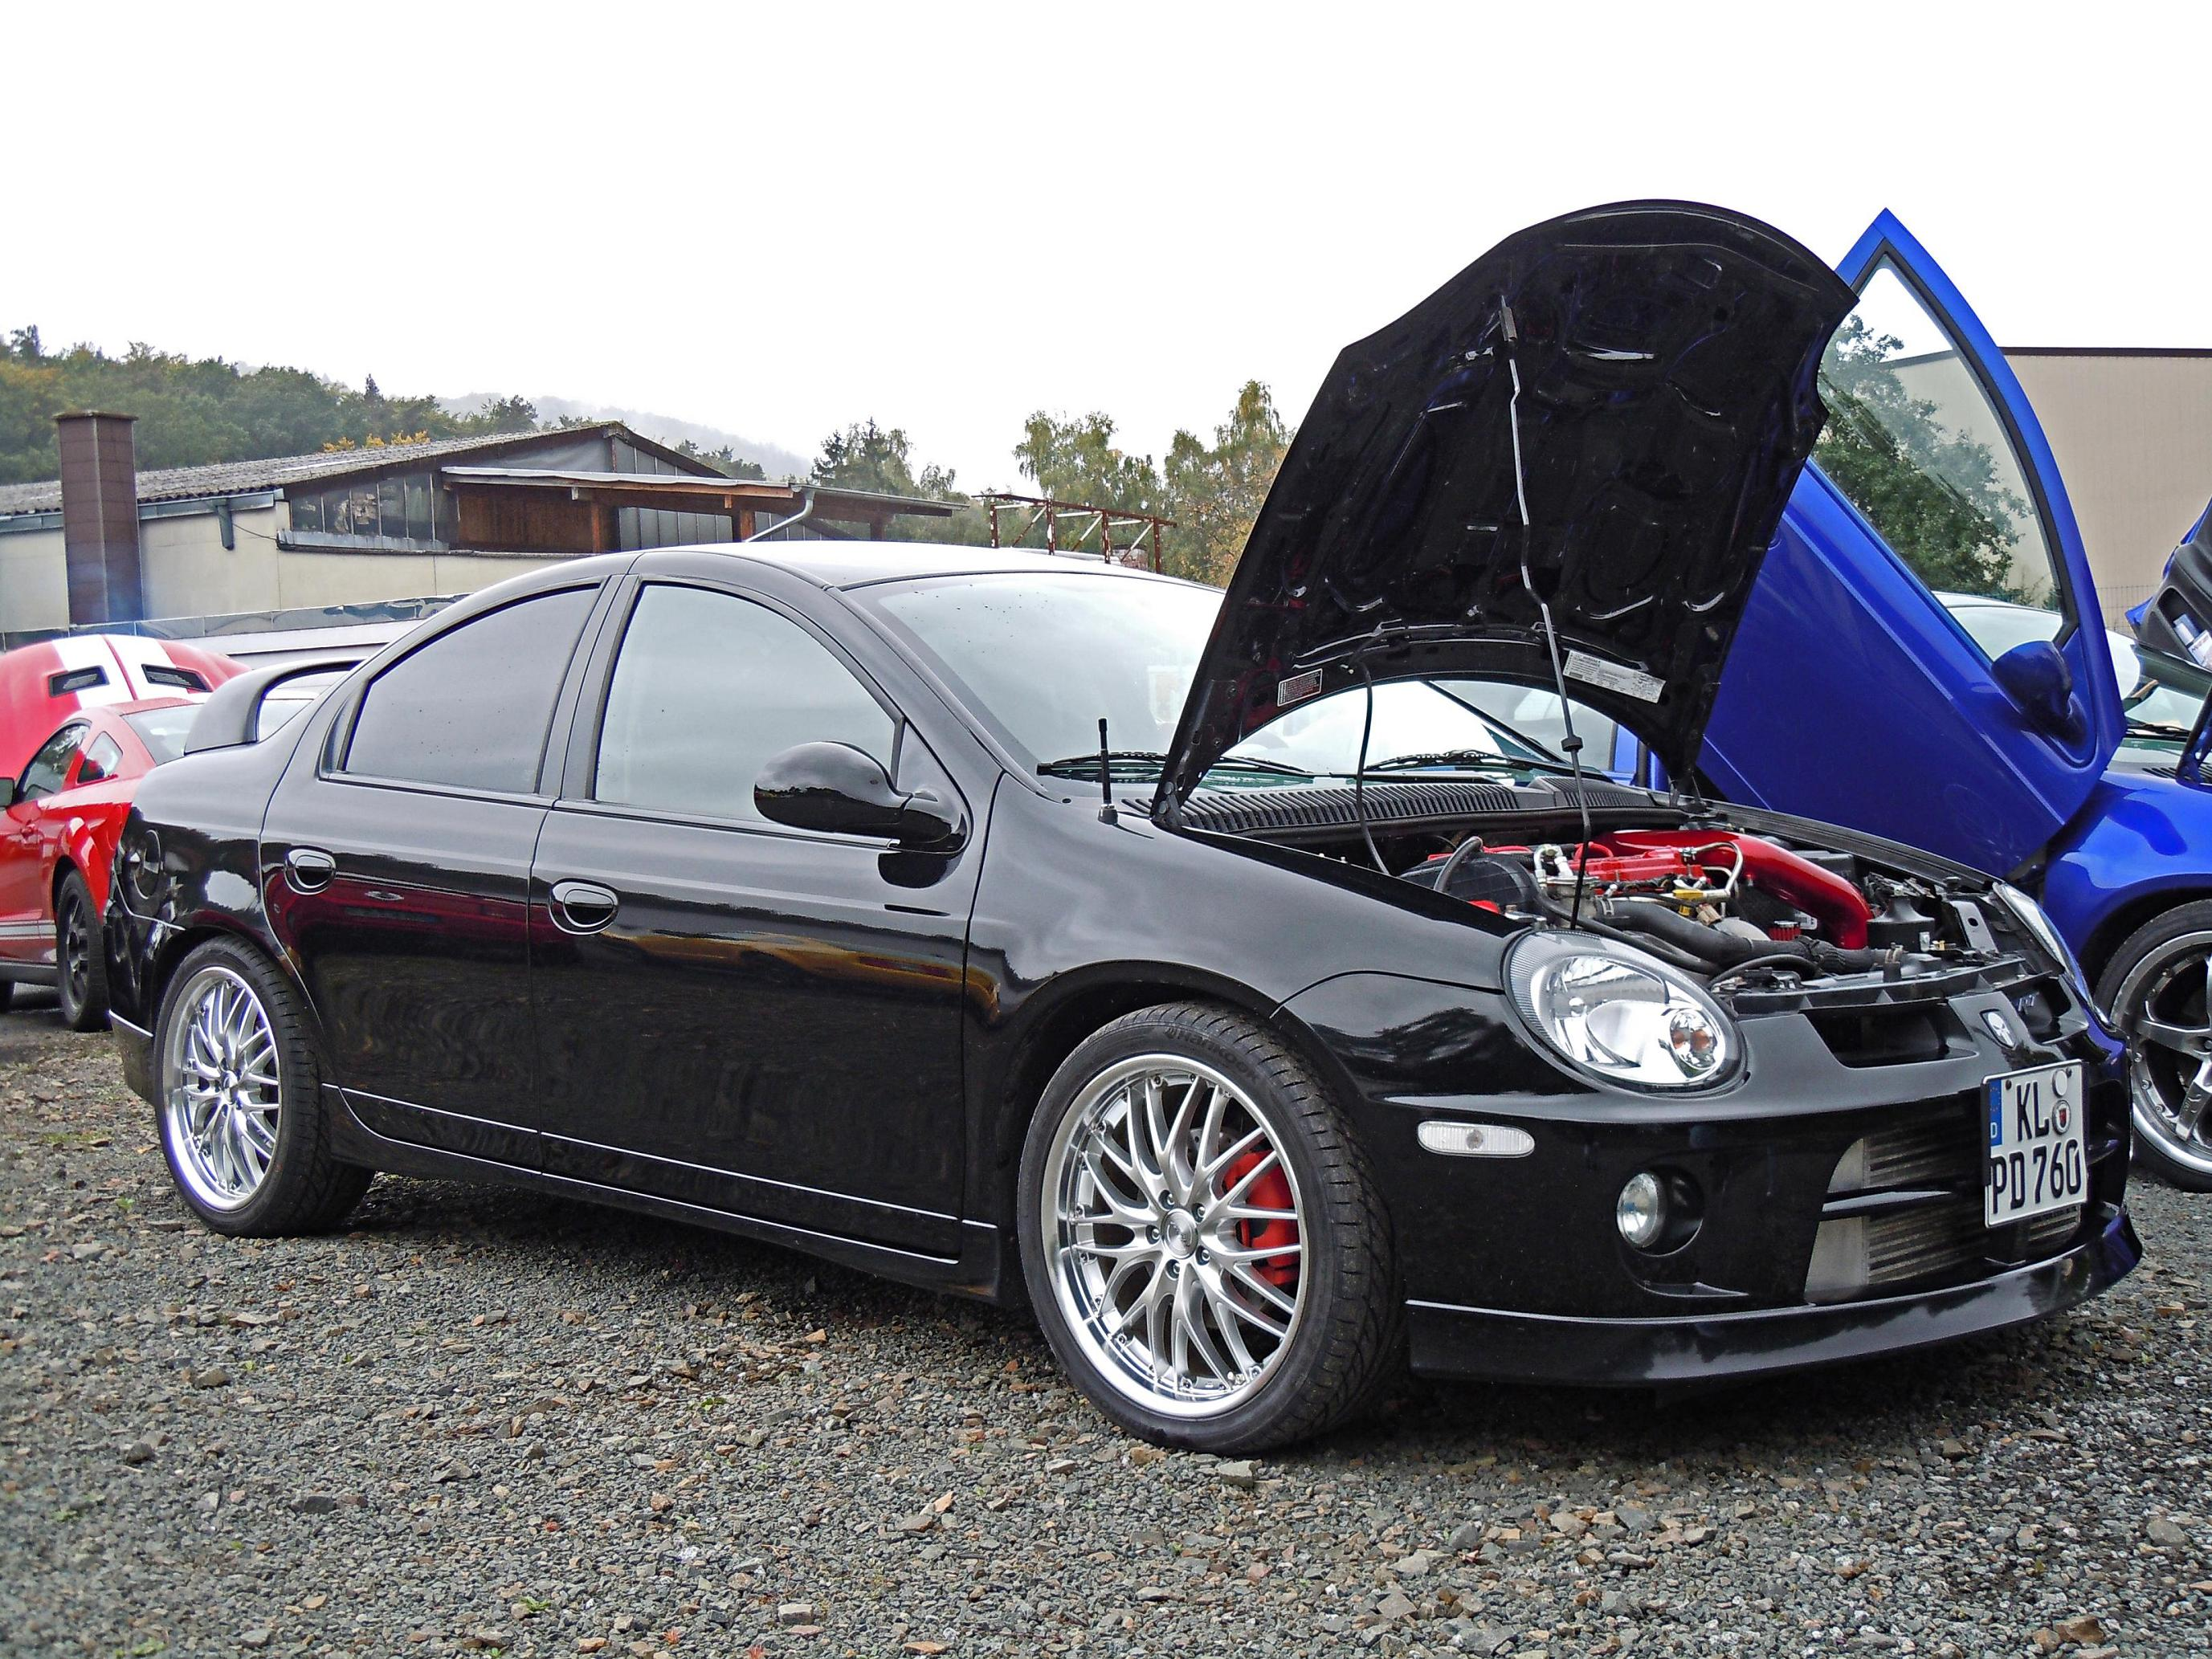 2005 dodge neon srt 4 pictures mods upgrades wallpaper. Black Bedroom Furniture Sets. Home Design Ideas